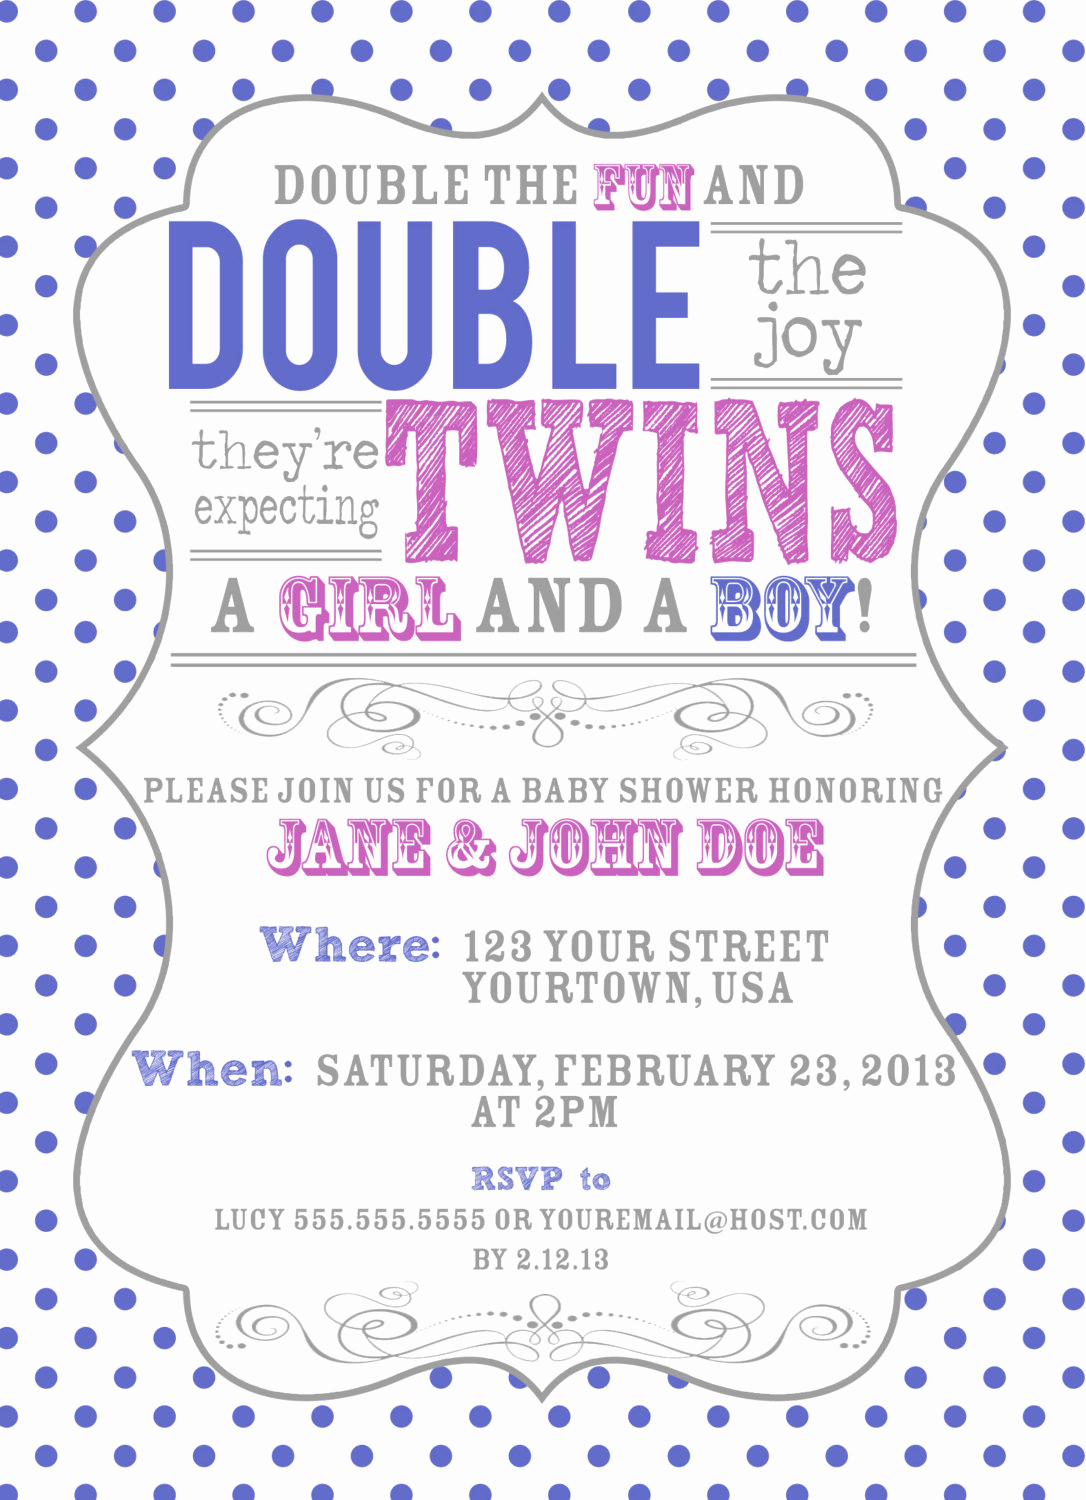 Baby Shower Invitation for Twins Fresh Vintage Inspired Twin Baby Shower Invitation by Pgcdesigns